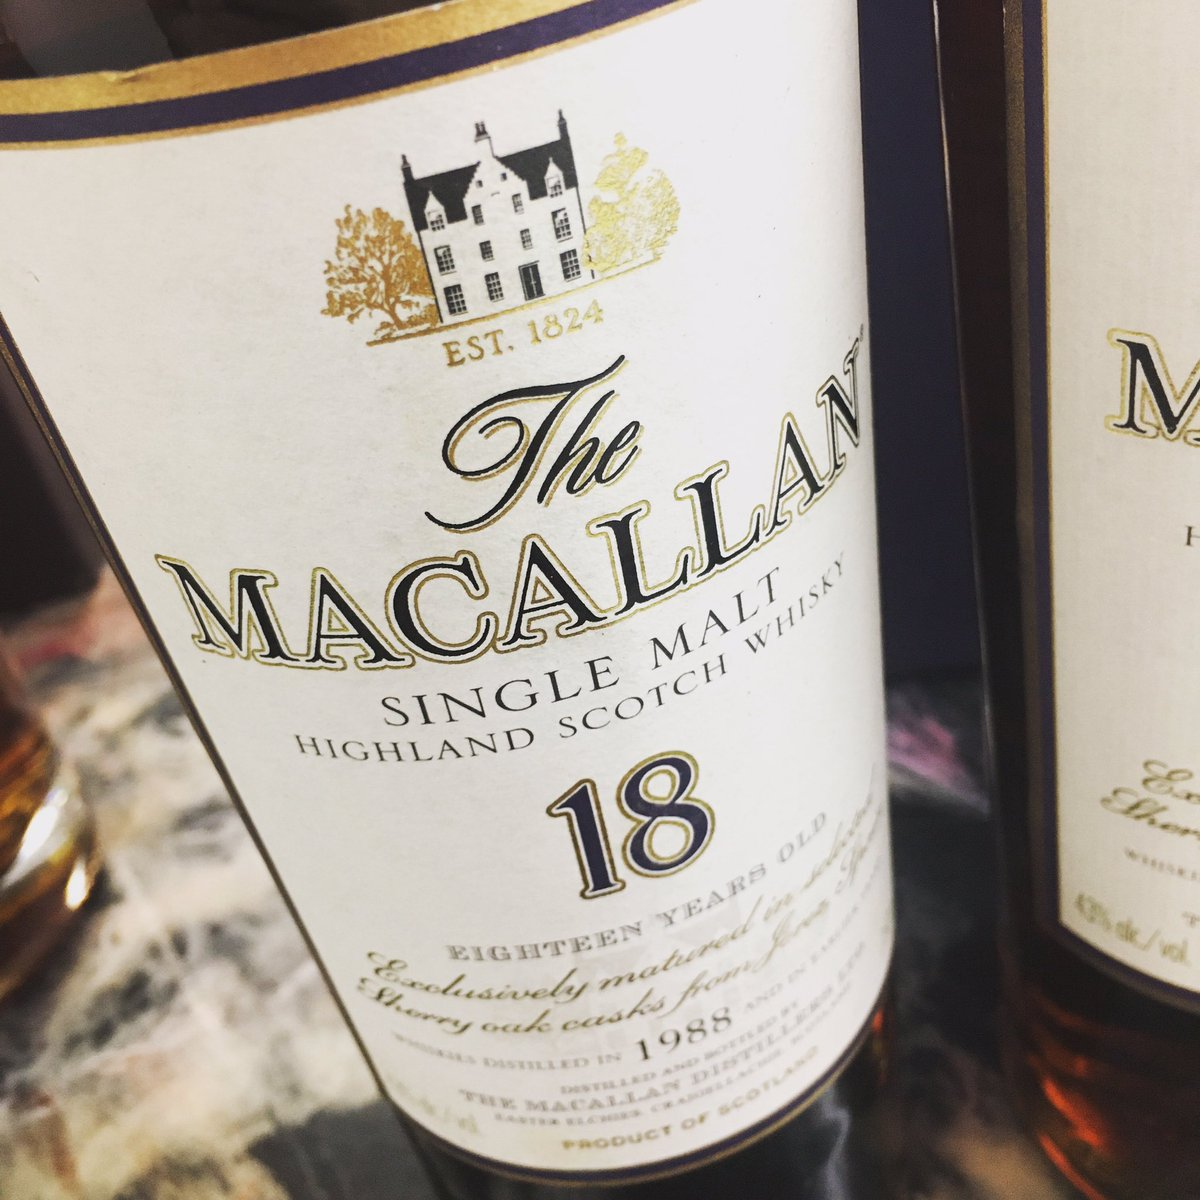 Thank you for selling us 1988 #macallan 18 Year Old #sherryoak #scotch #Whisky today!  Contact us when you're ready to sell your #whisky! sales@tkwine.com  #sellwhiskey #tkwine #torrance #losangeles https://t.co/PIMGPe84z0